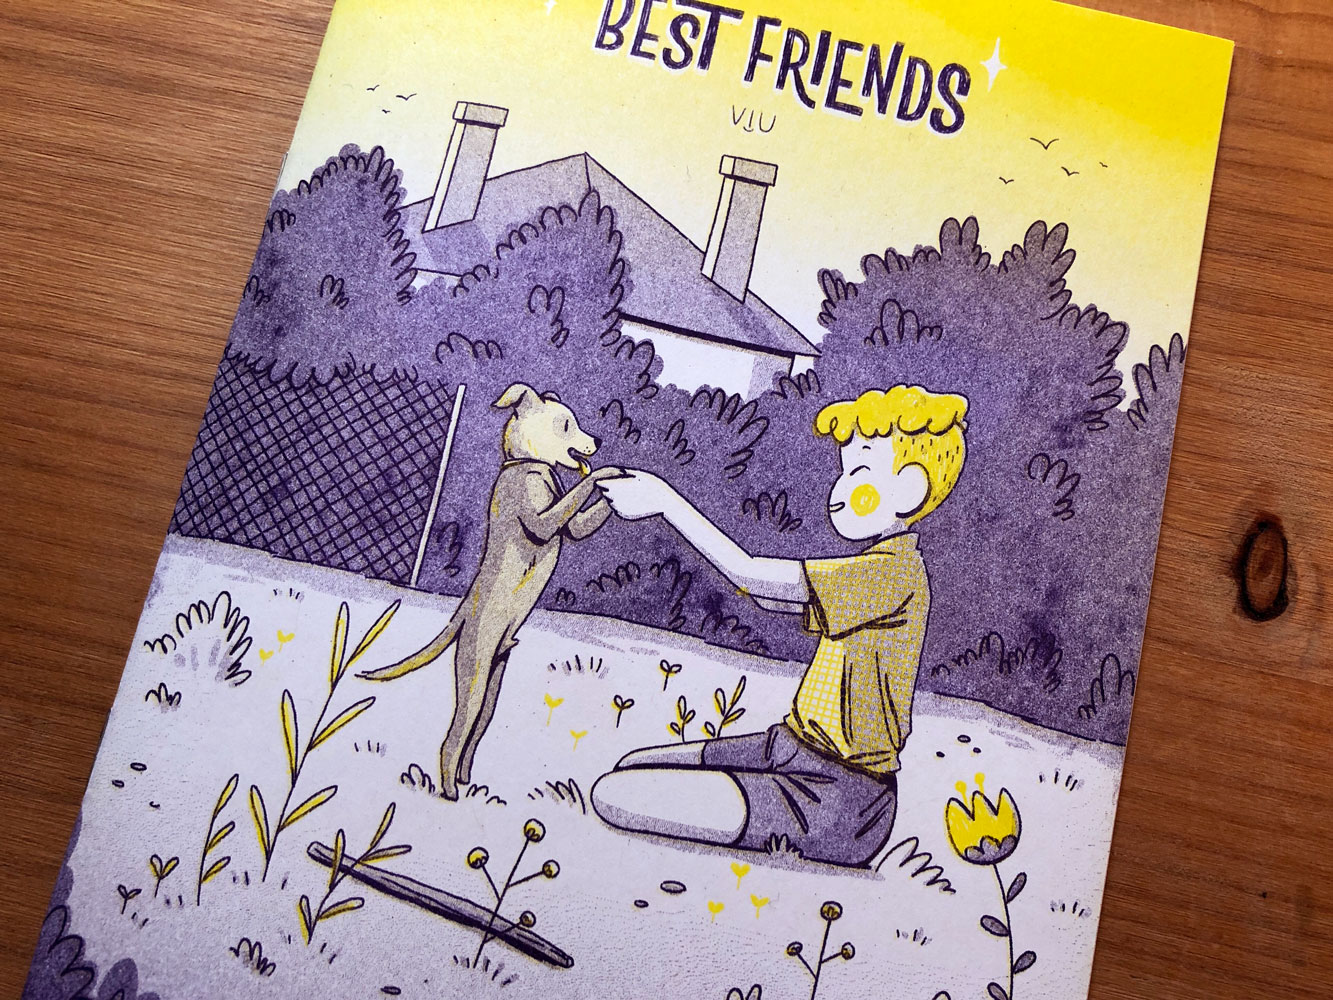 Best Friends Zine